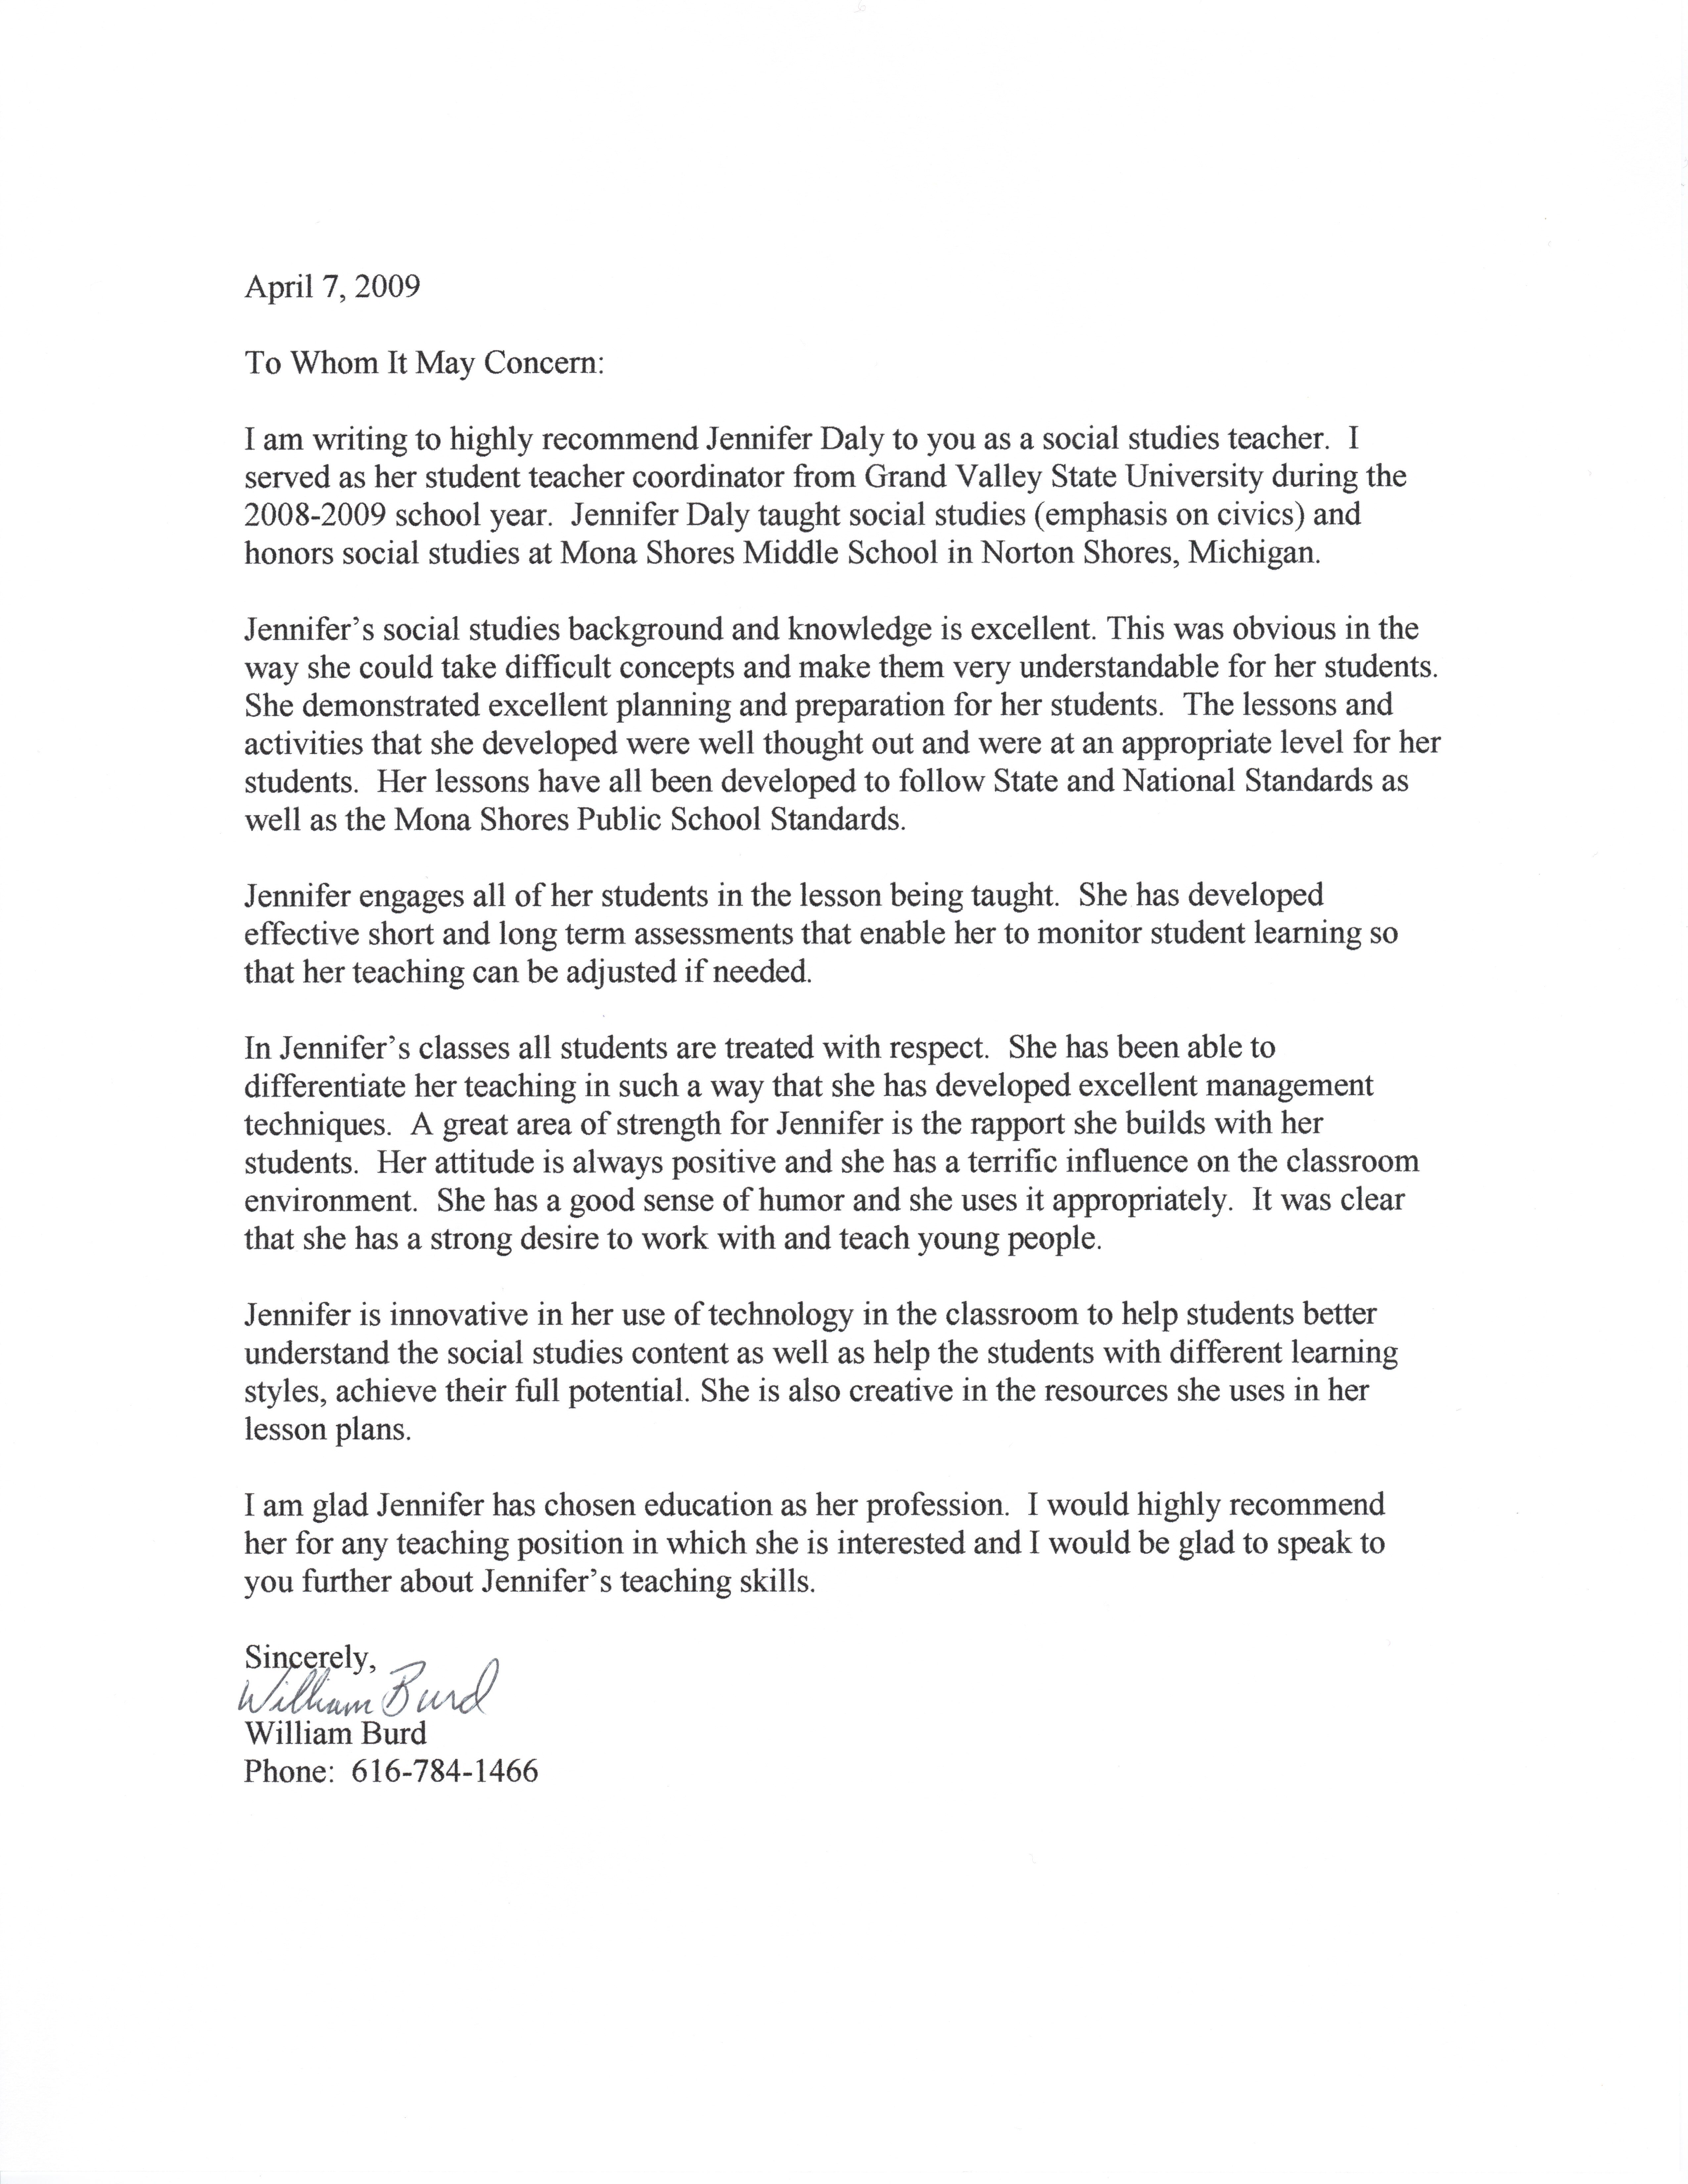 High Quality Student Teacher Recommendation Letter Examples | Letter Of Recommendation U2013  Student Teaching Coordinator Within Reference Letter